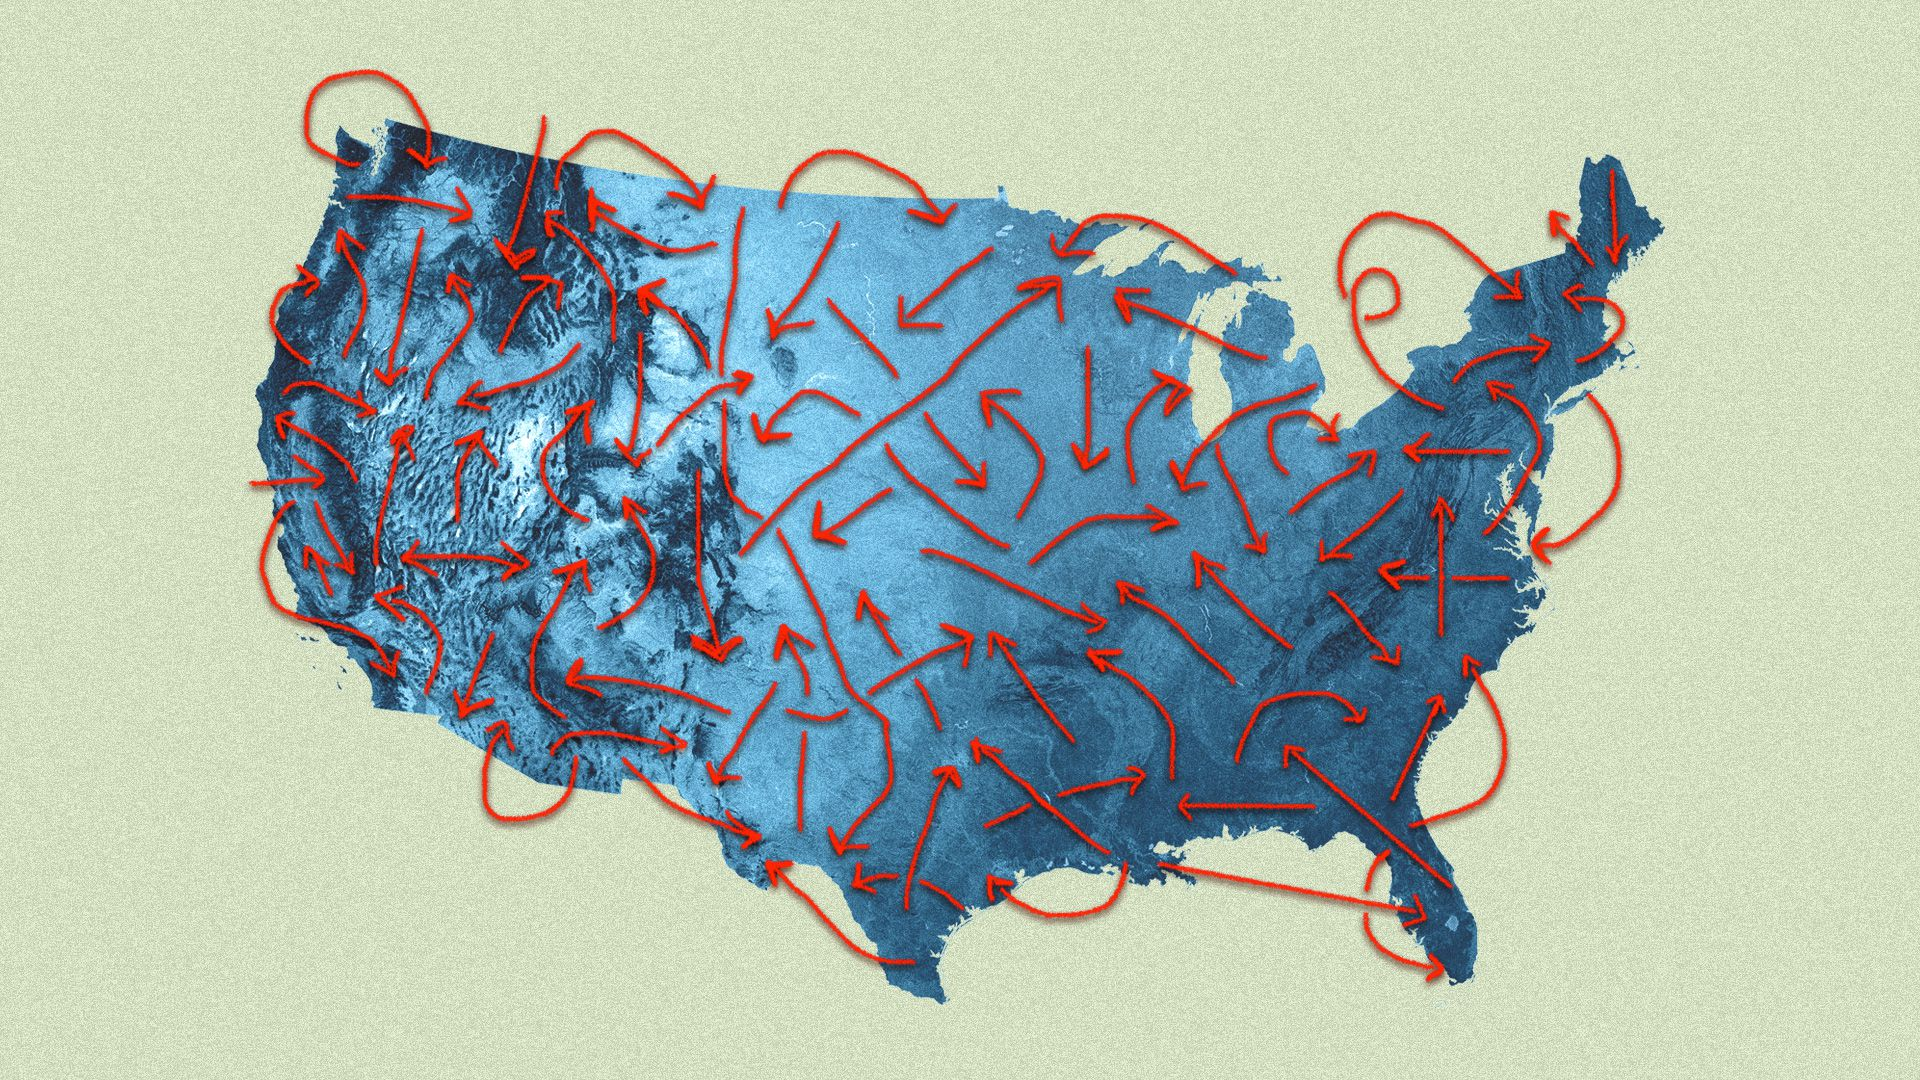 A map with arrows pointing to different parts of the country